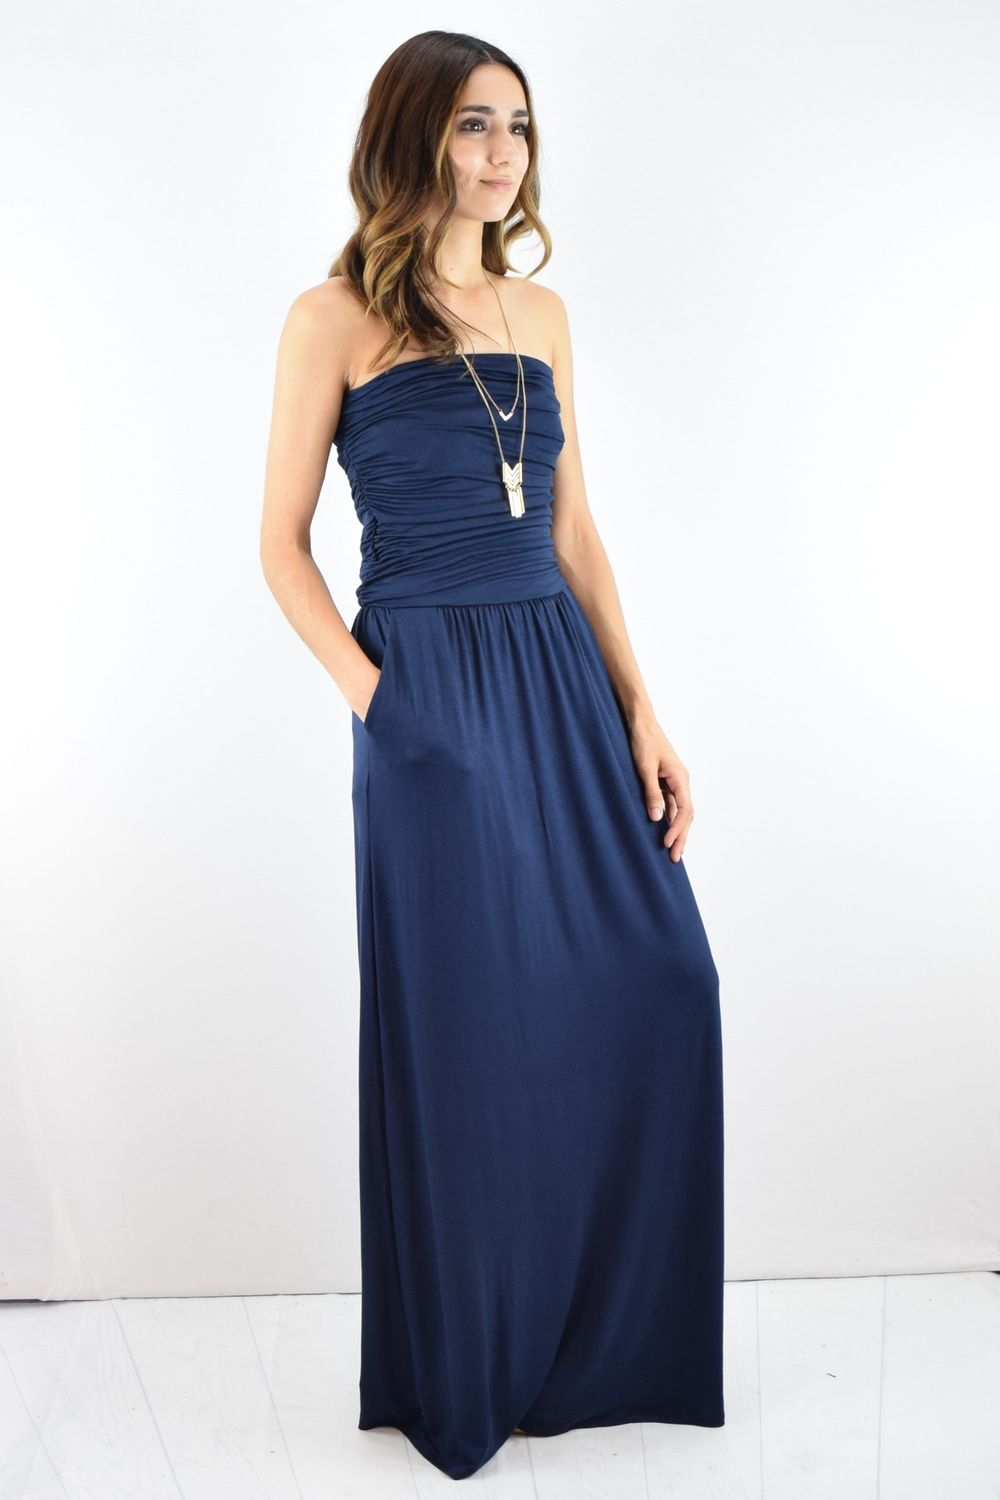 Solid Navy Tube Top Maxi Dress